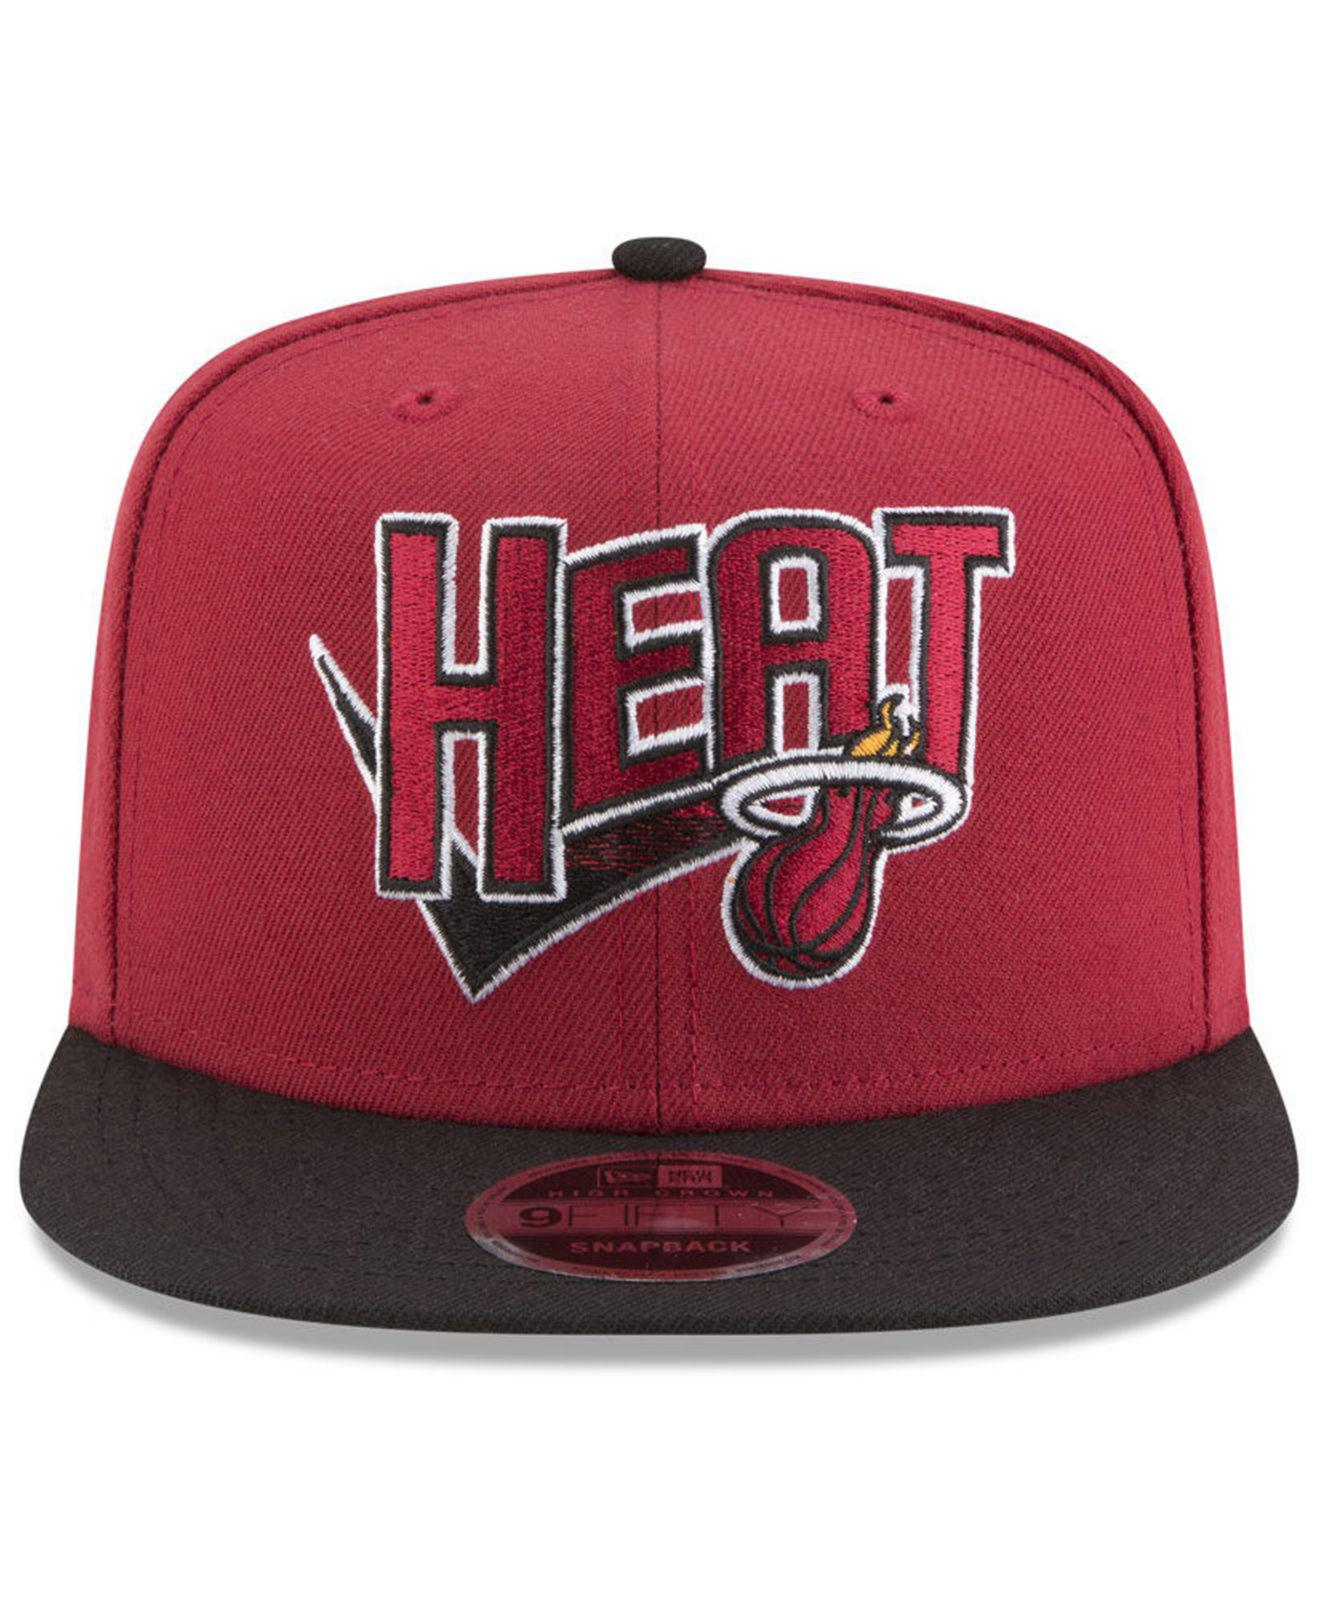 new style 6a496 8713a new arrivals lyst ktz miami heat retro tail 9fifty snapback cap in red for  men 34f7a